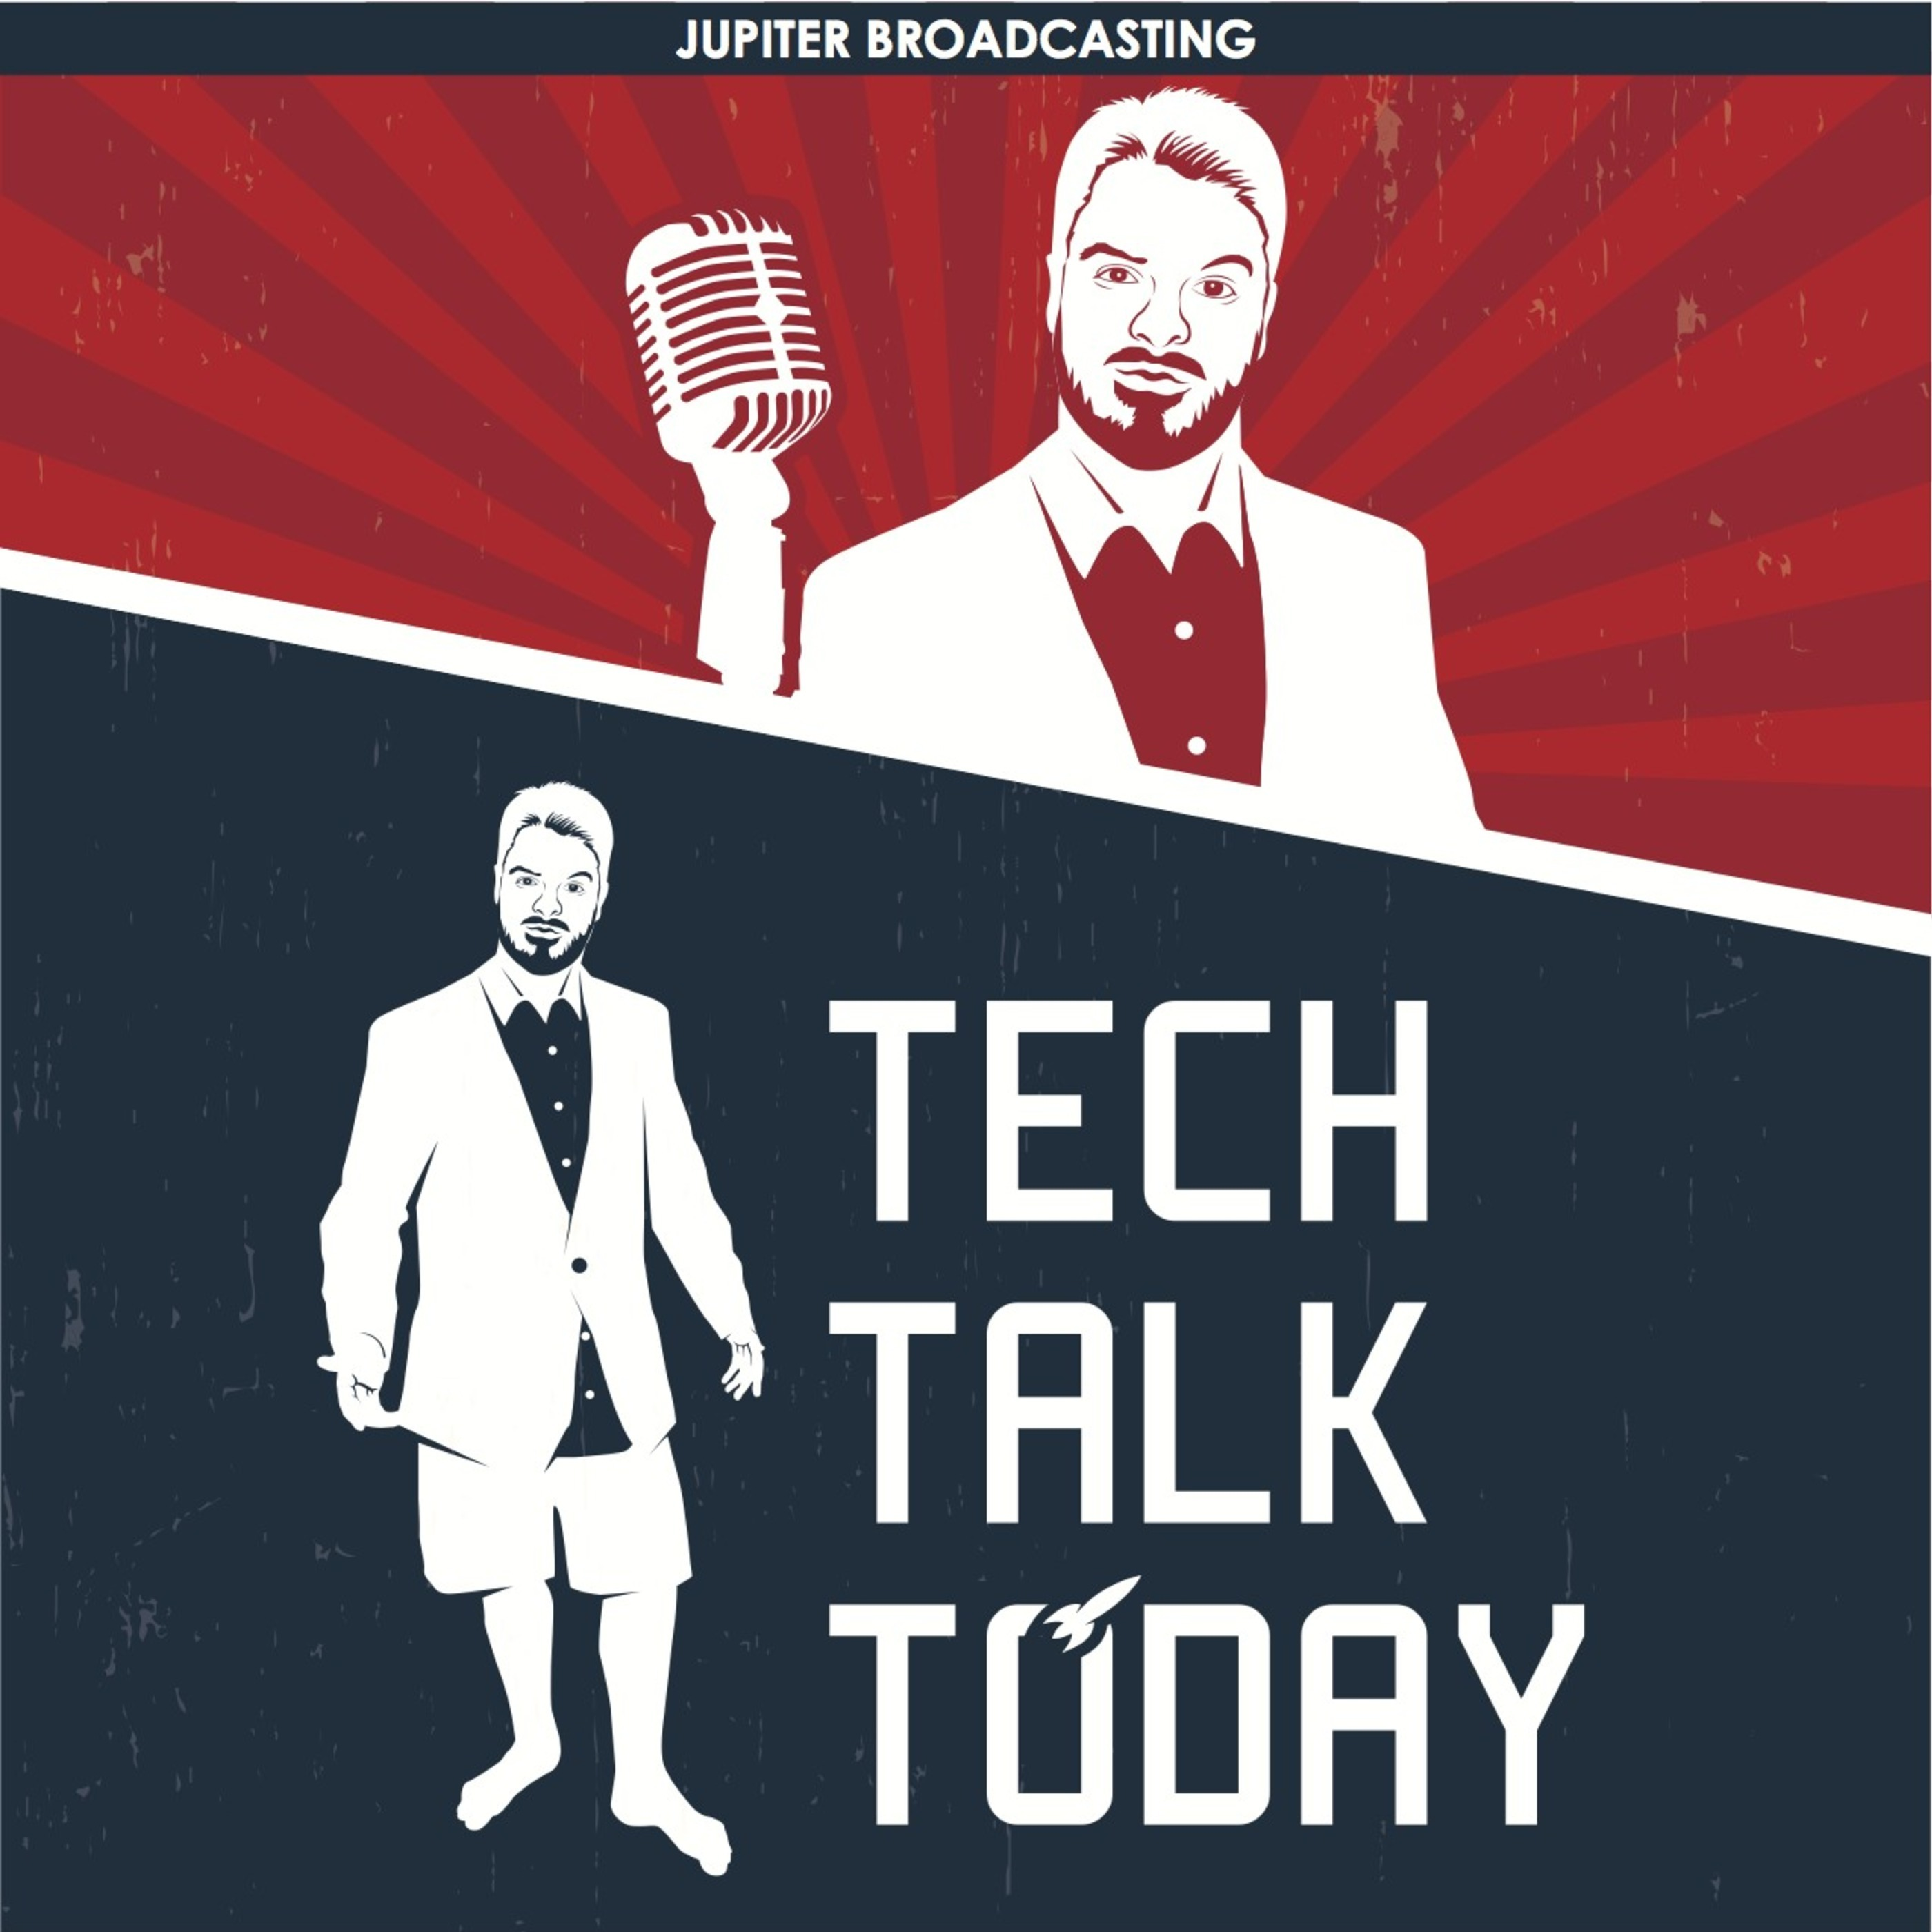 Episode 3: $10 Cat Videos | Tech Talk Today 156